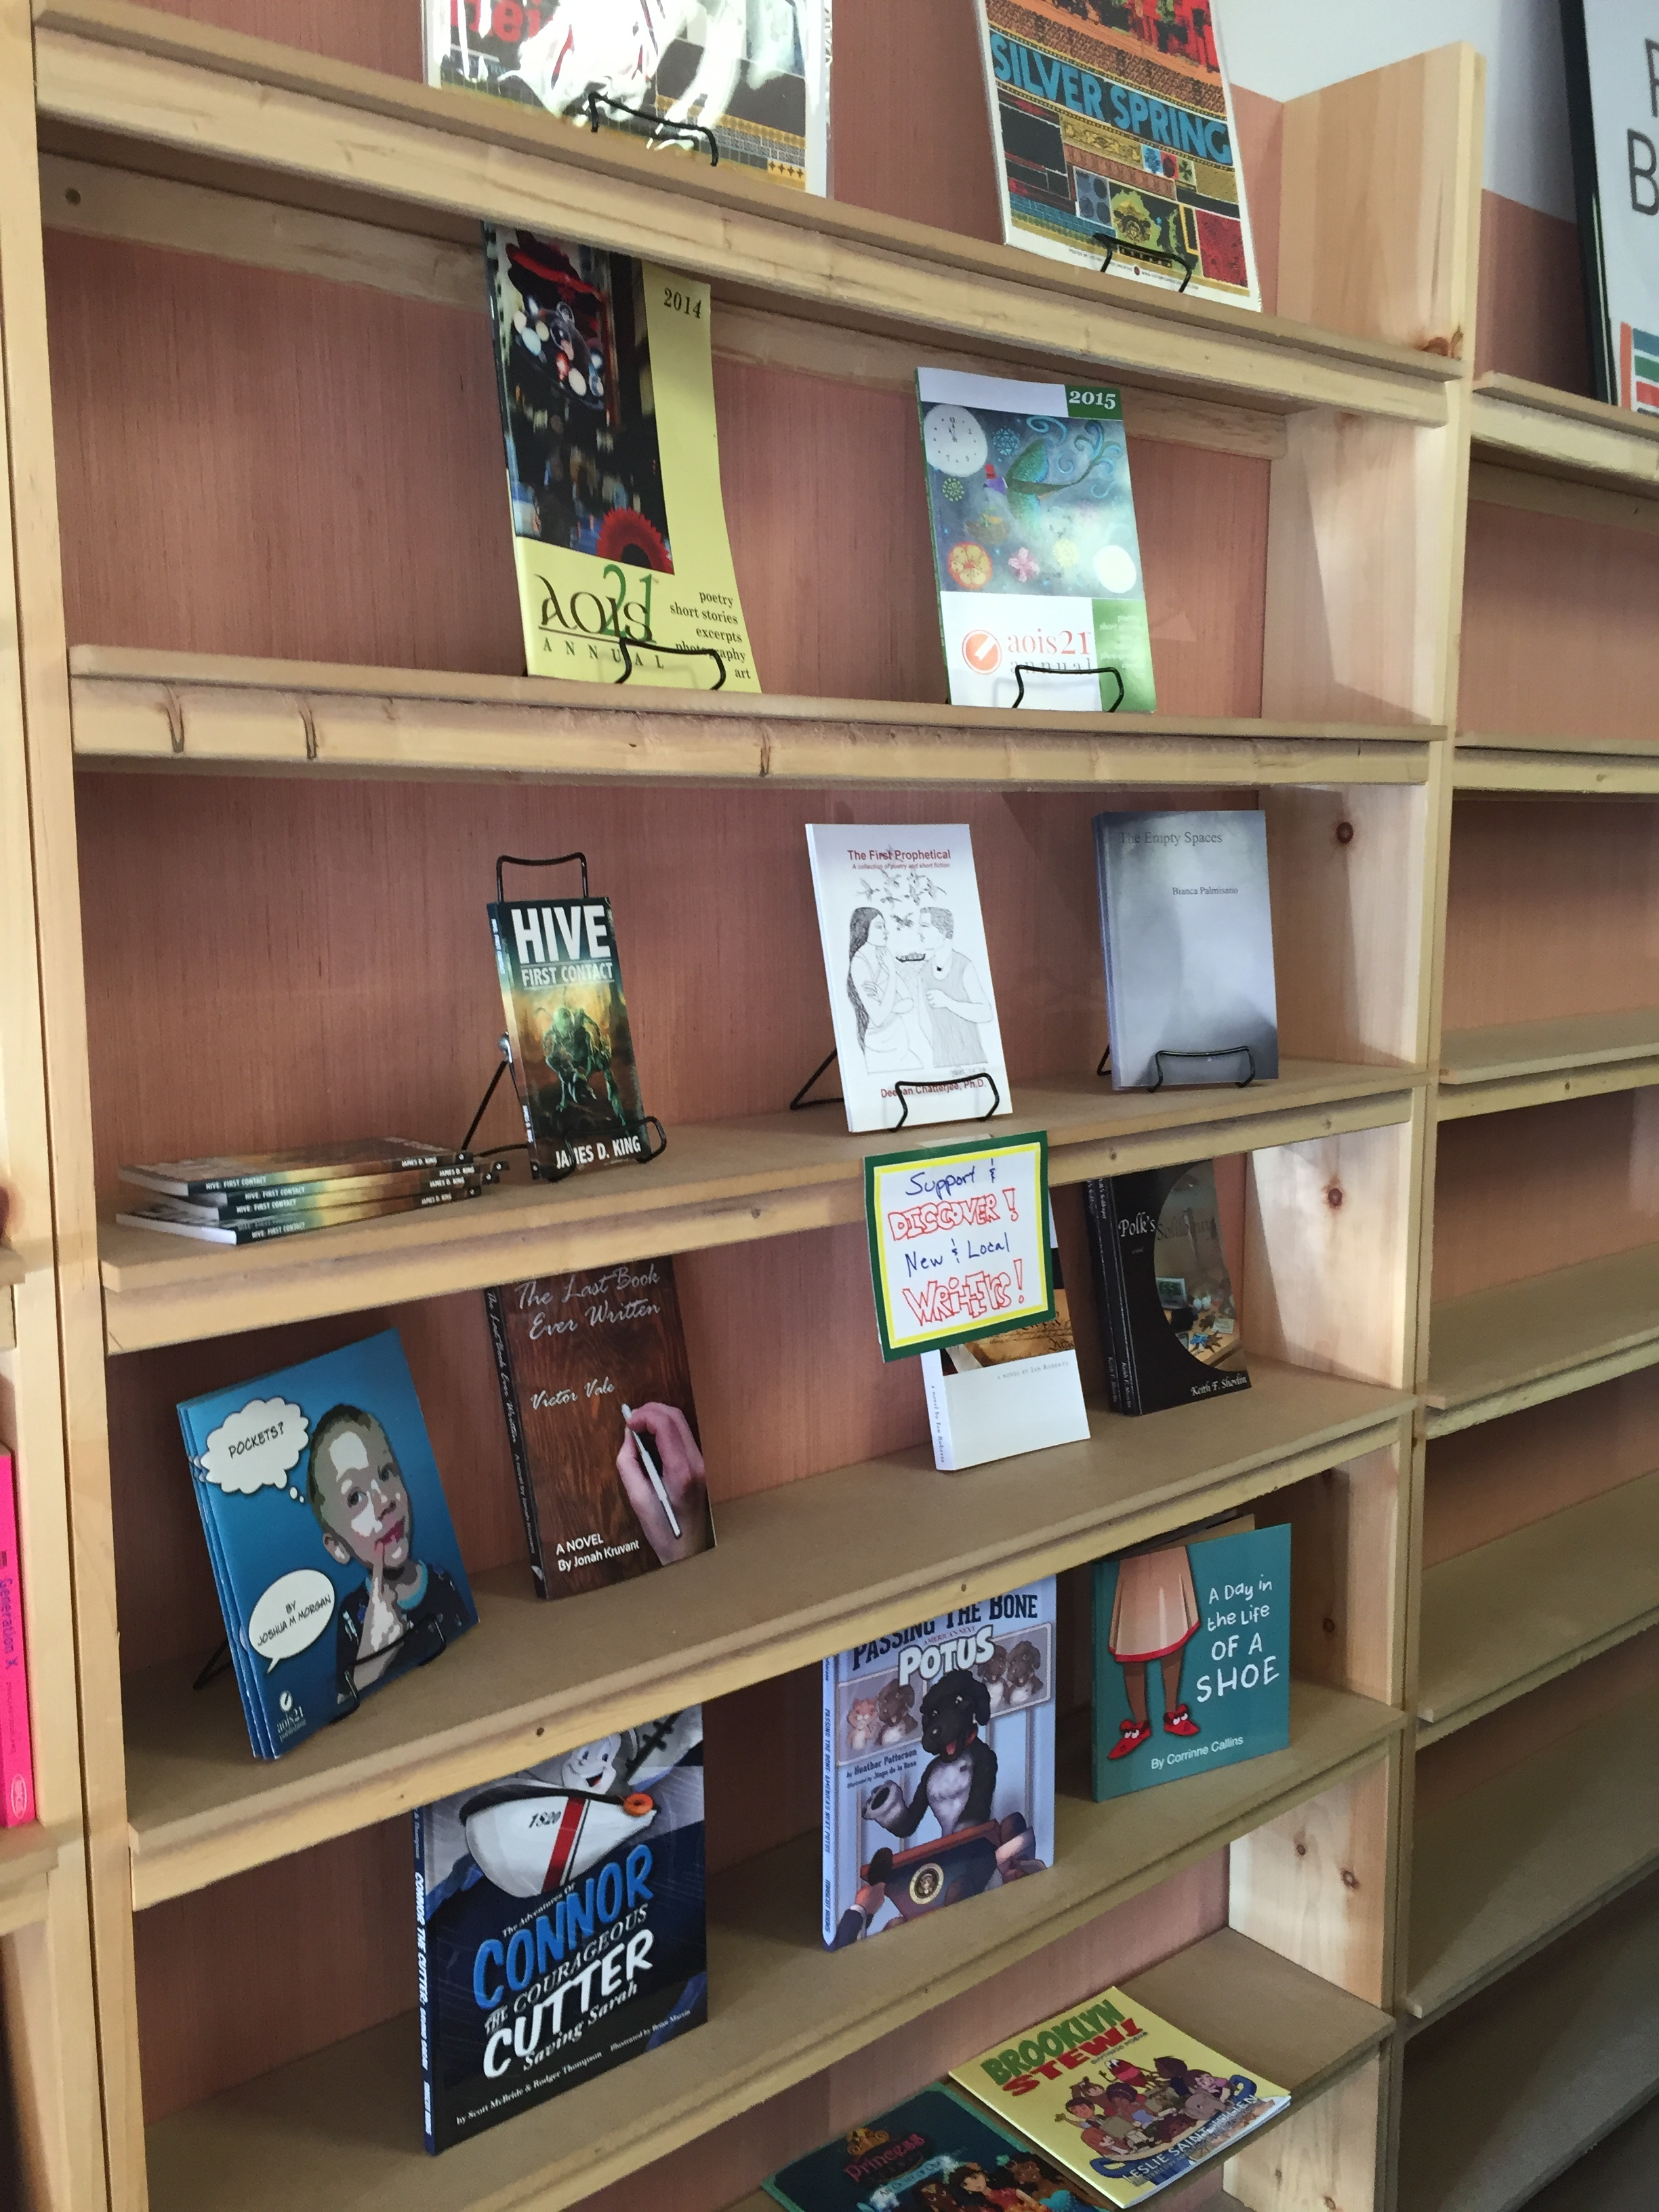 aois21 titles on the local author shelves at Walls of Books